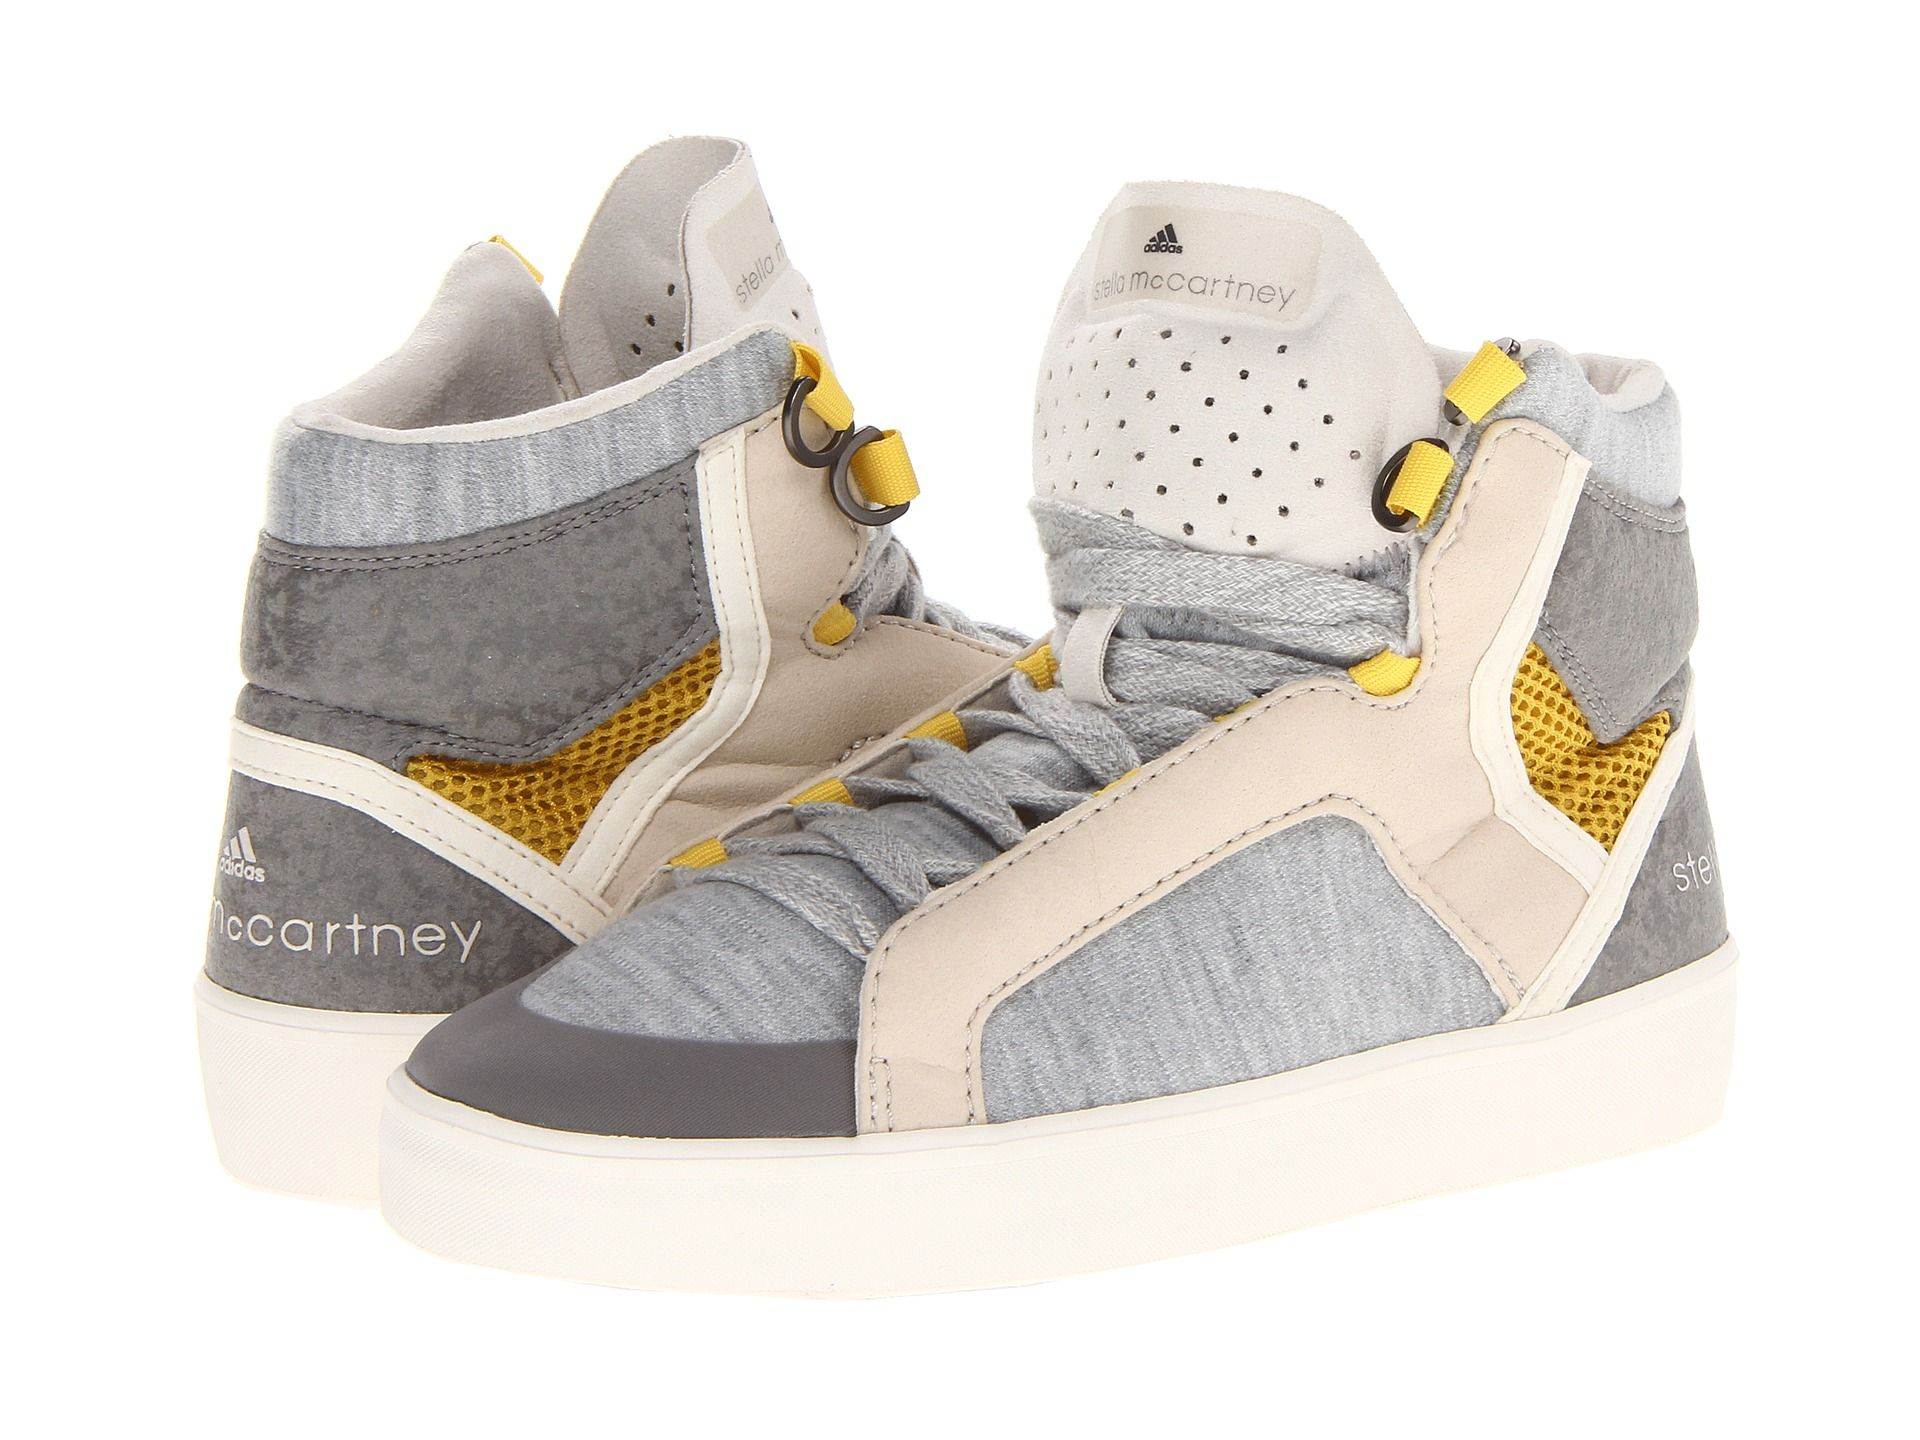 58cbbf32912 adidas by Stella McCartney Discosura Hiker Medium